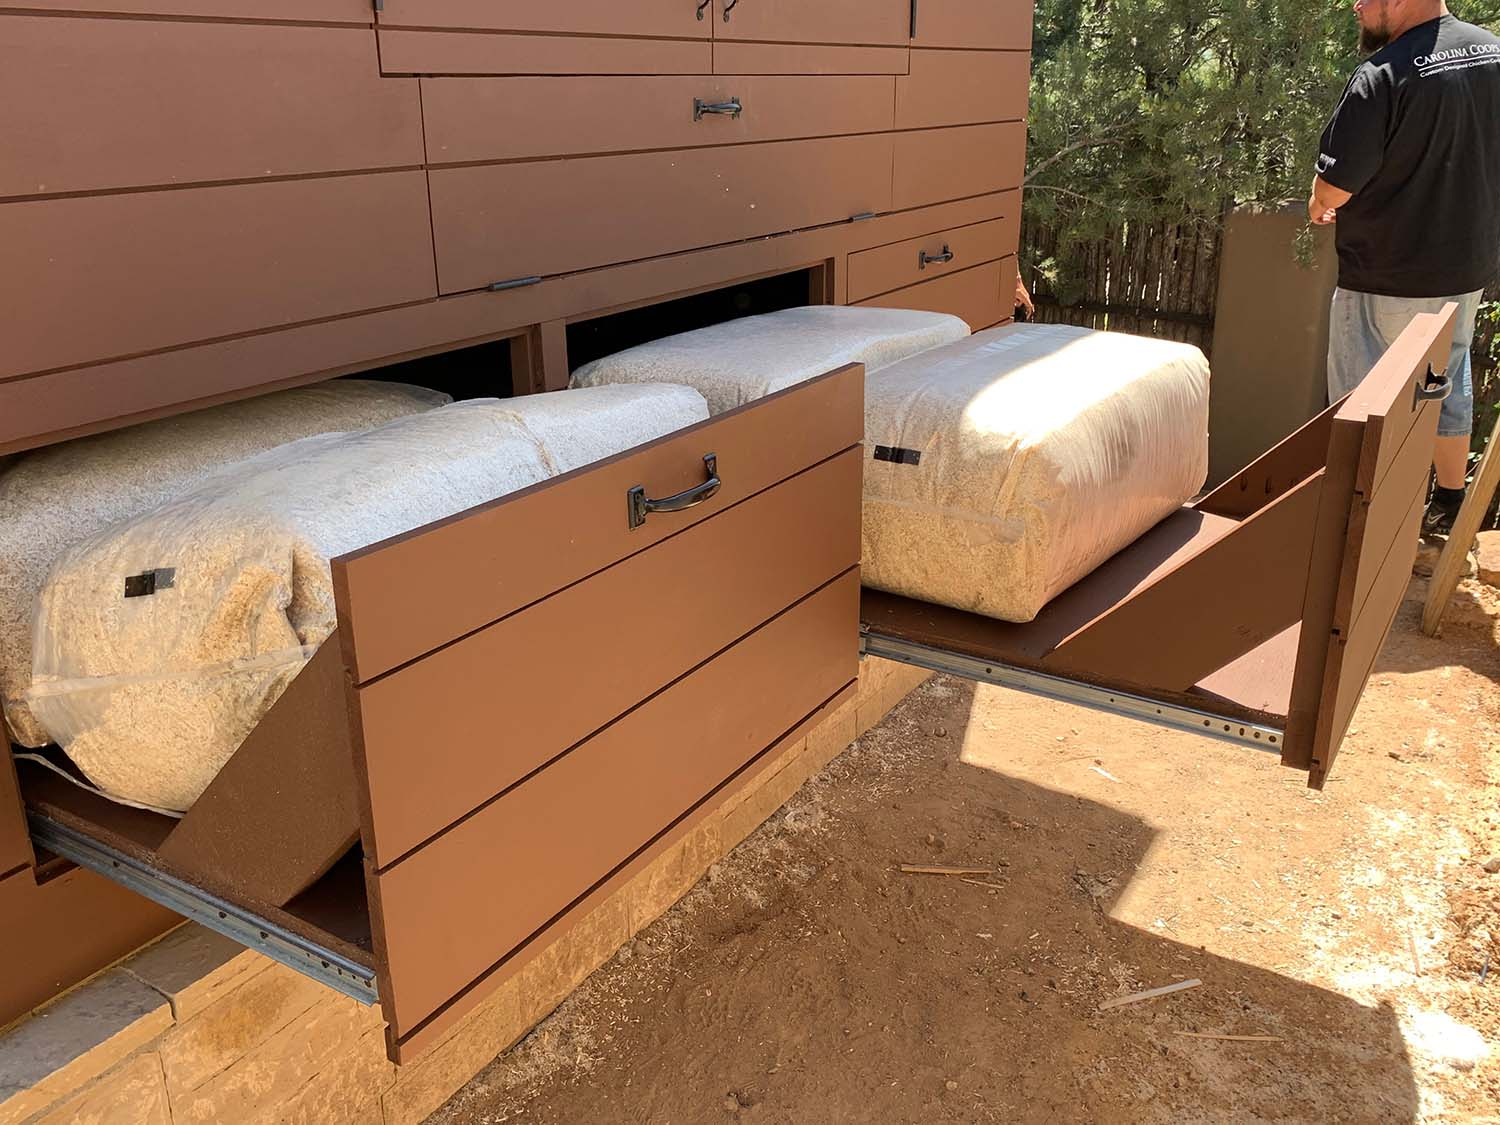 Storage under the henhouse of a modern custom coop in Santa Fe, NM